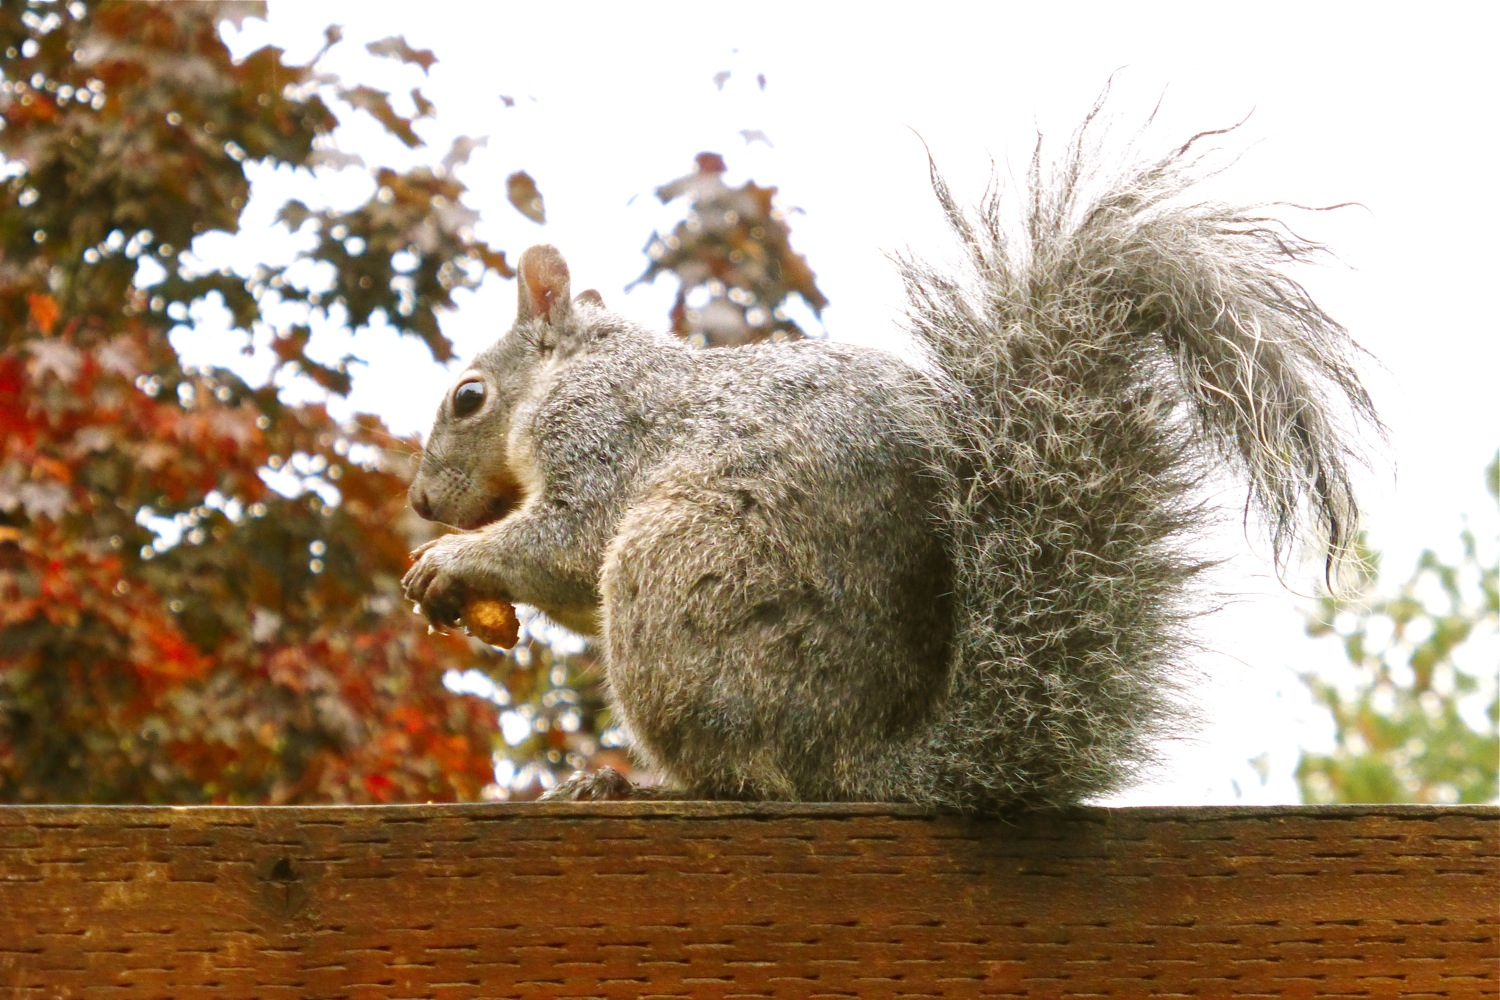 autumn garden, Pacific Northwest gray squirrel, Pacific Northwest grey squirrel, Oregon squirrel